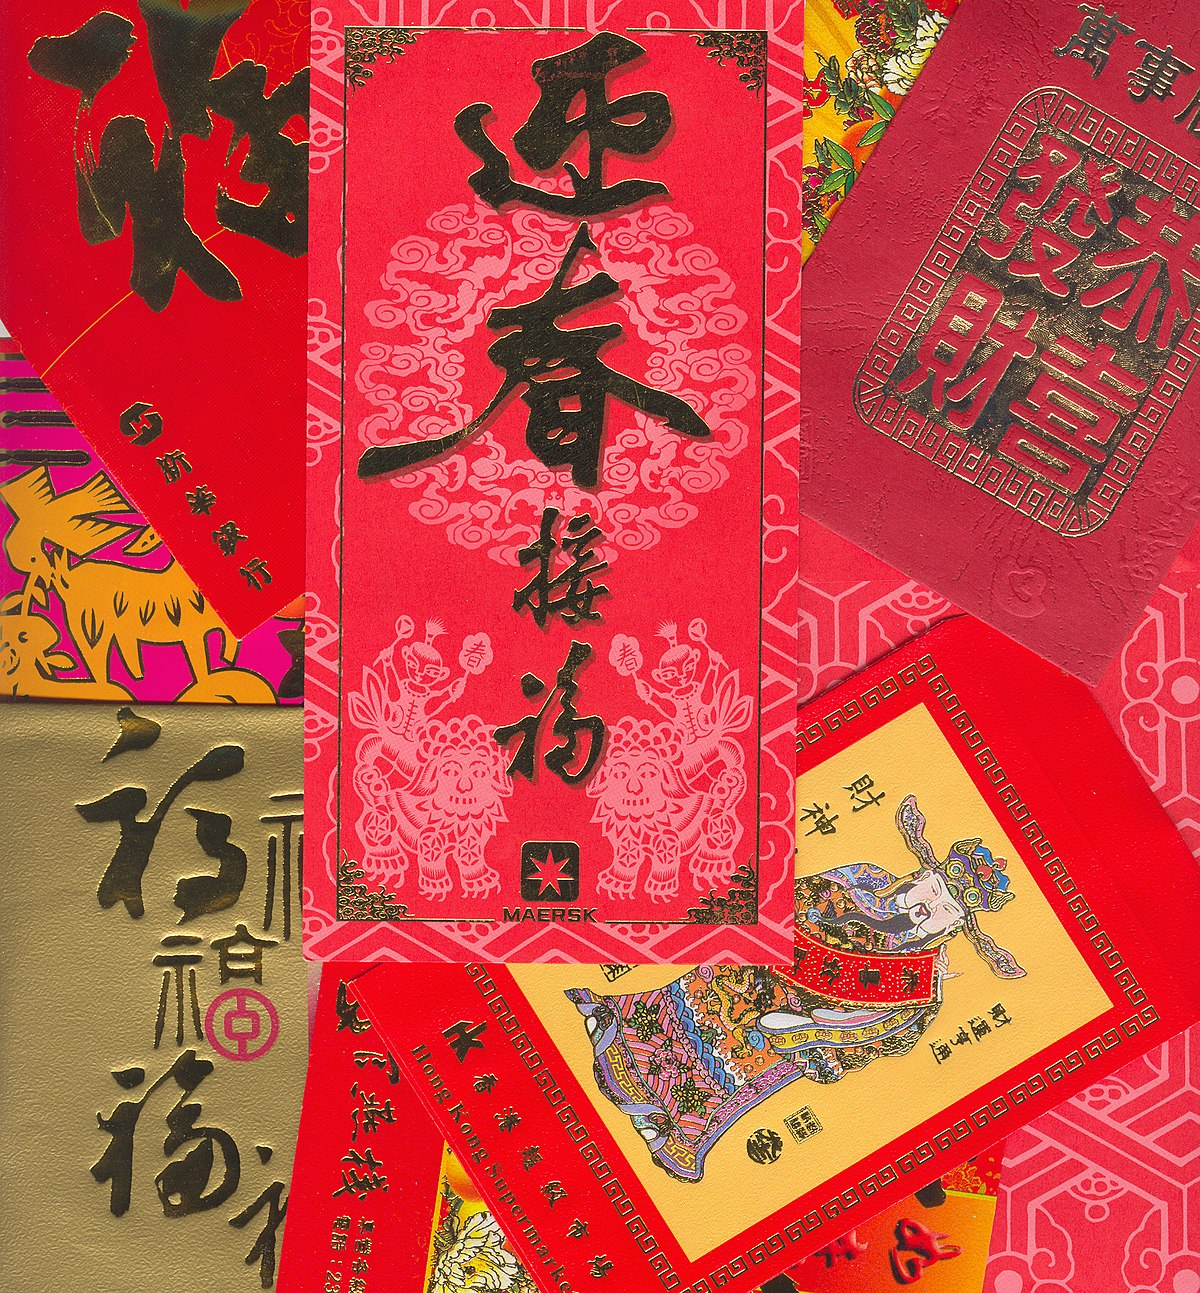 Red 1.com Red Envelope Wikipedia